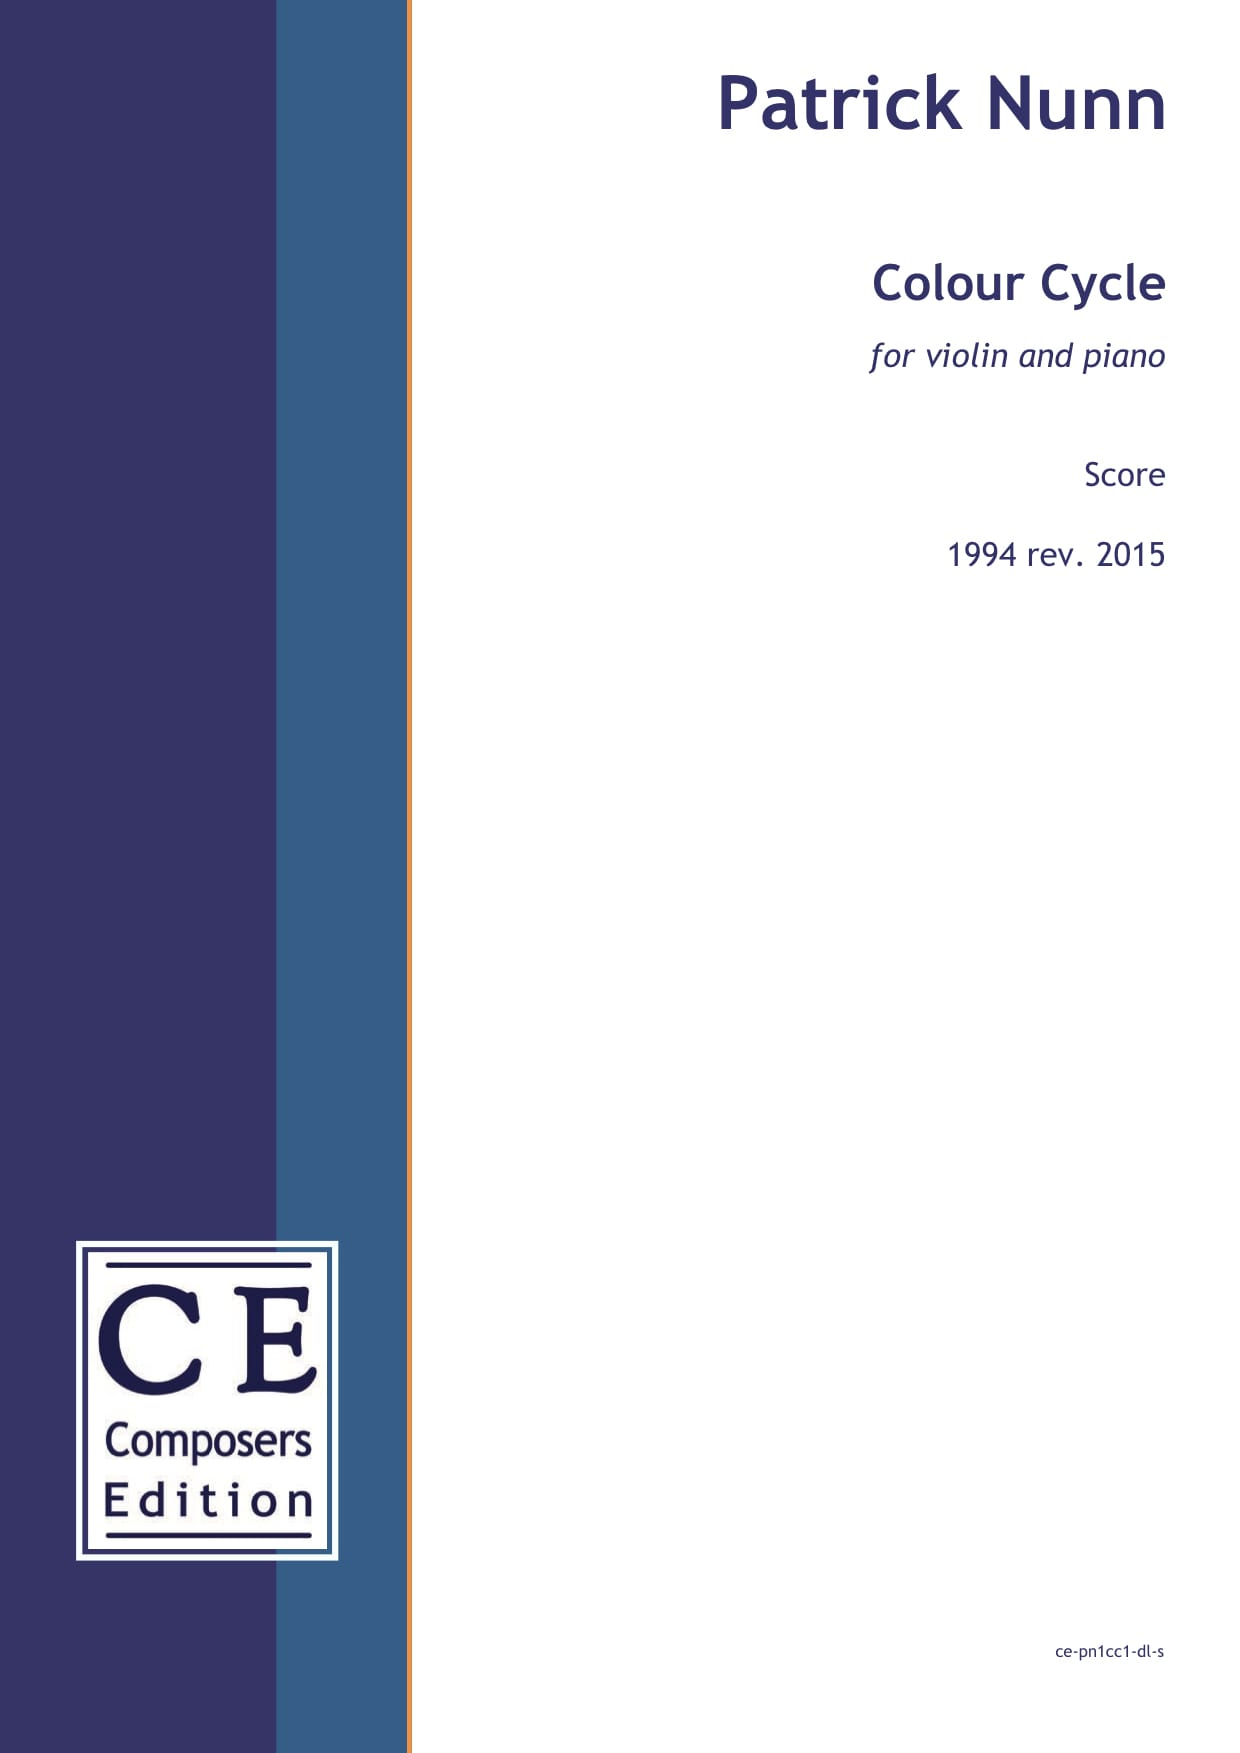 Patrick Nunn: Colour Cycle for violin and piano